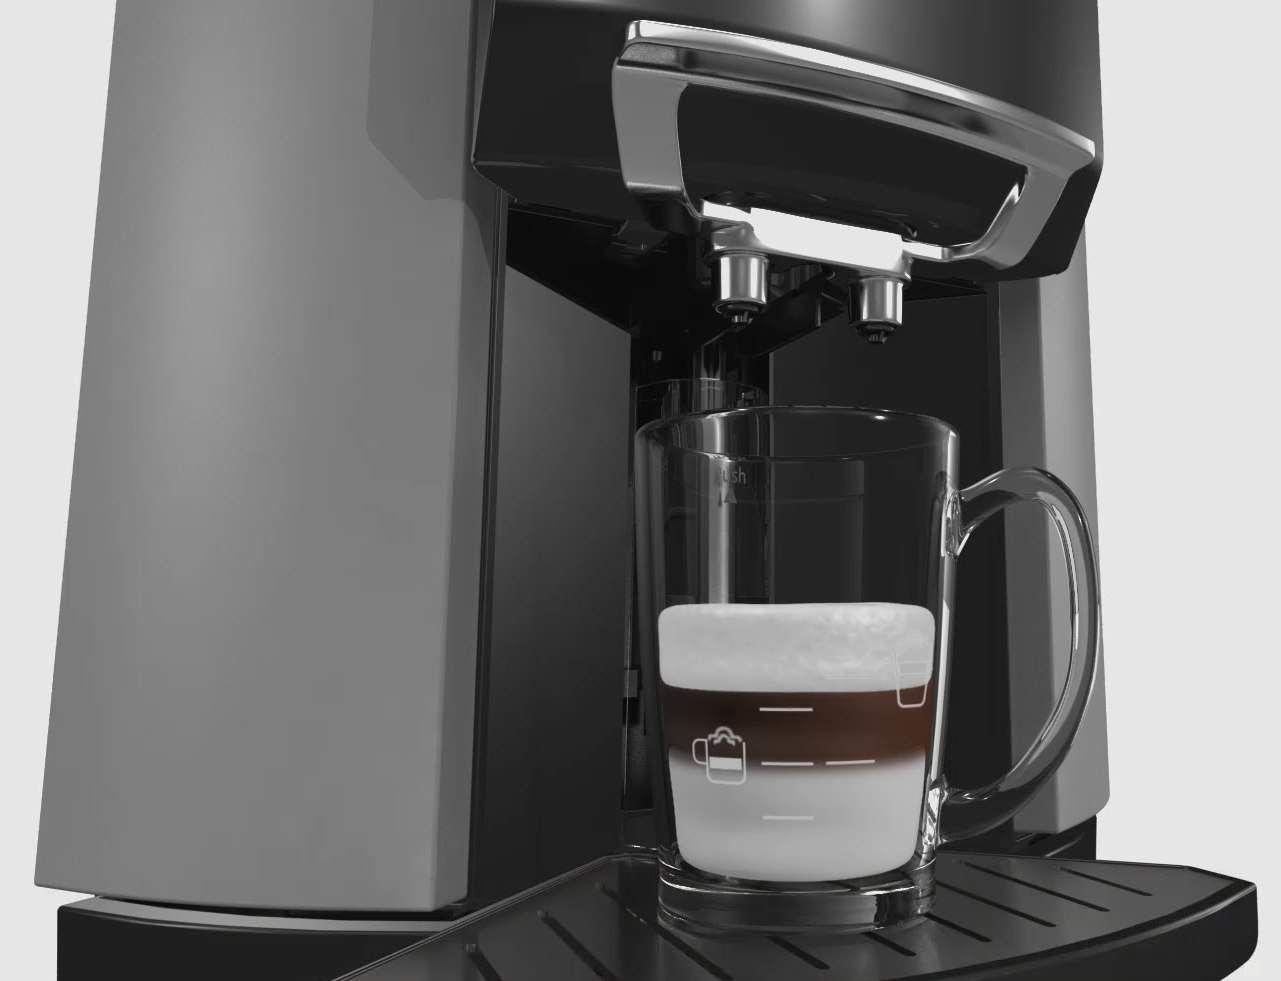 Cappuccino vs latte maker is there any difference